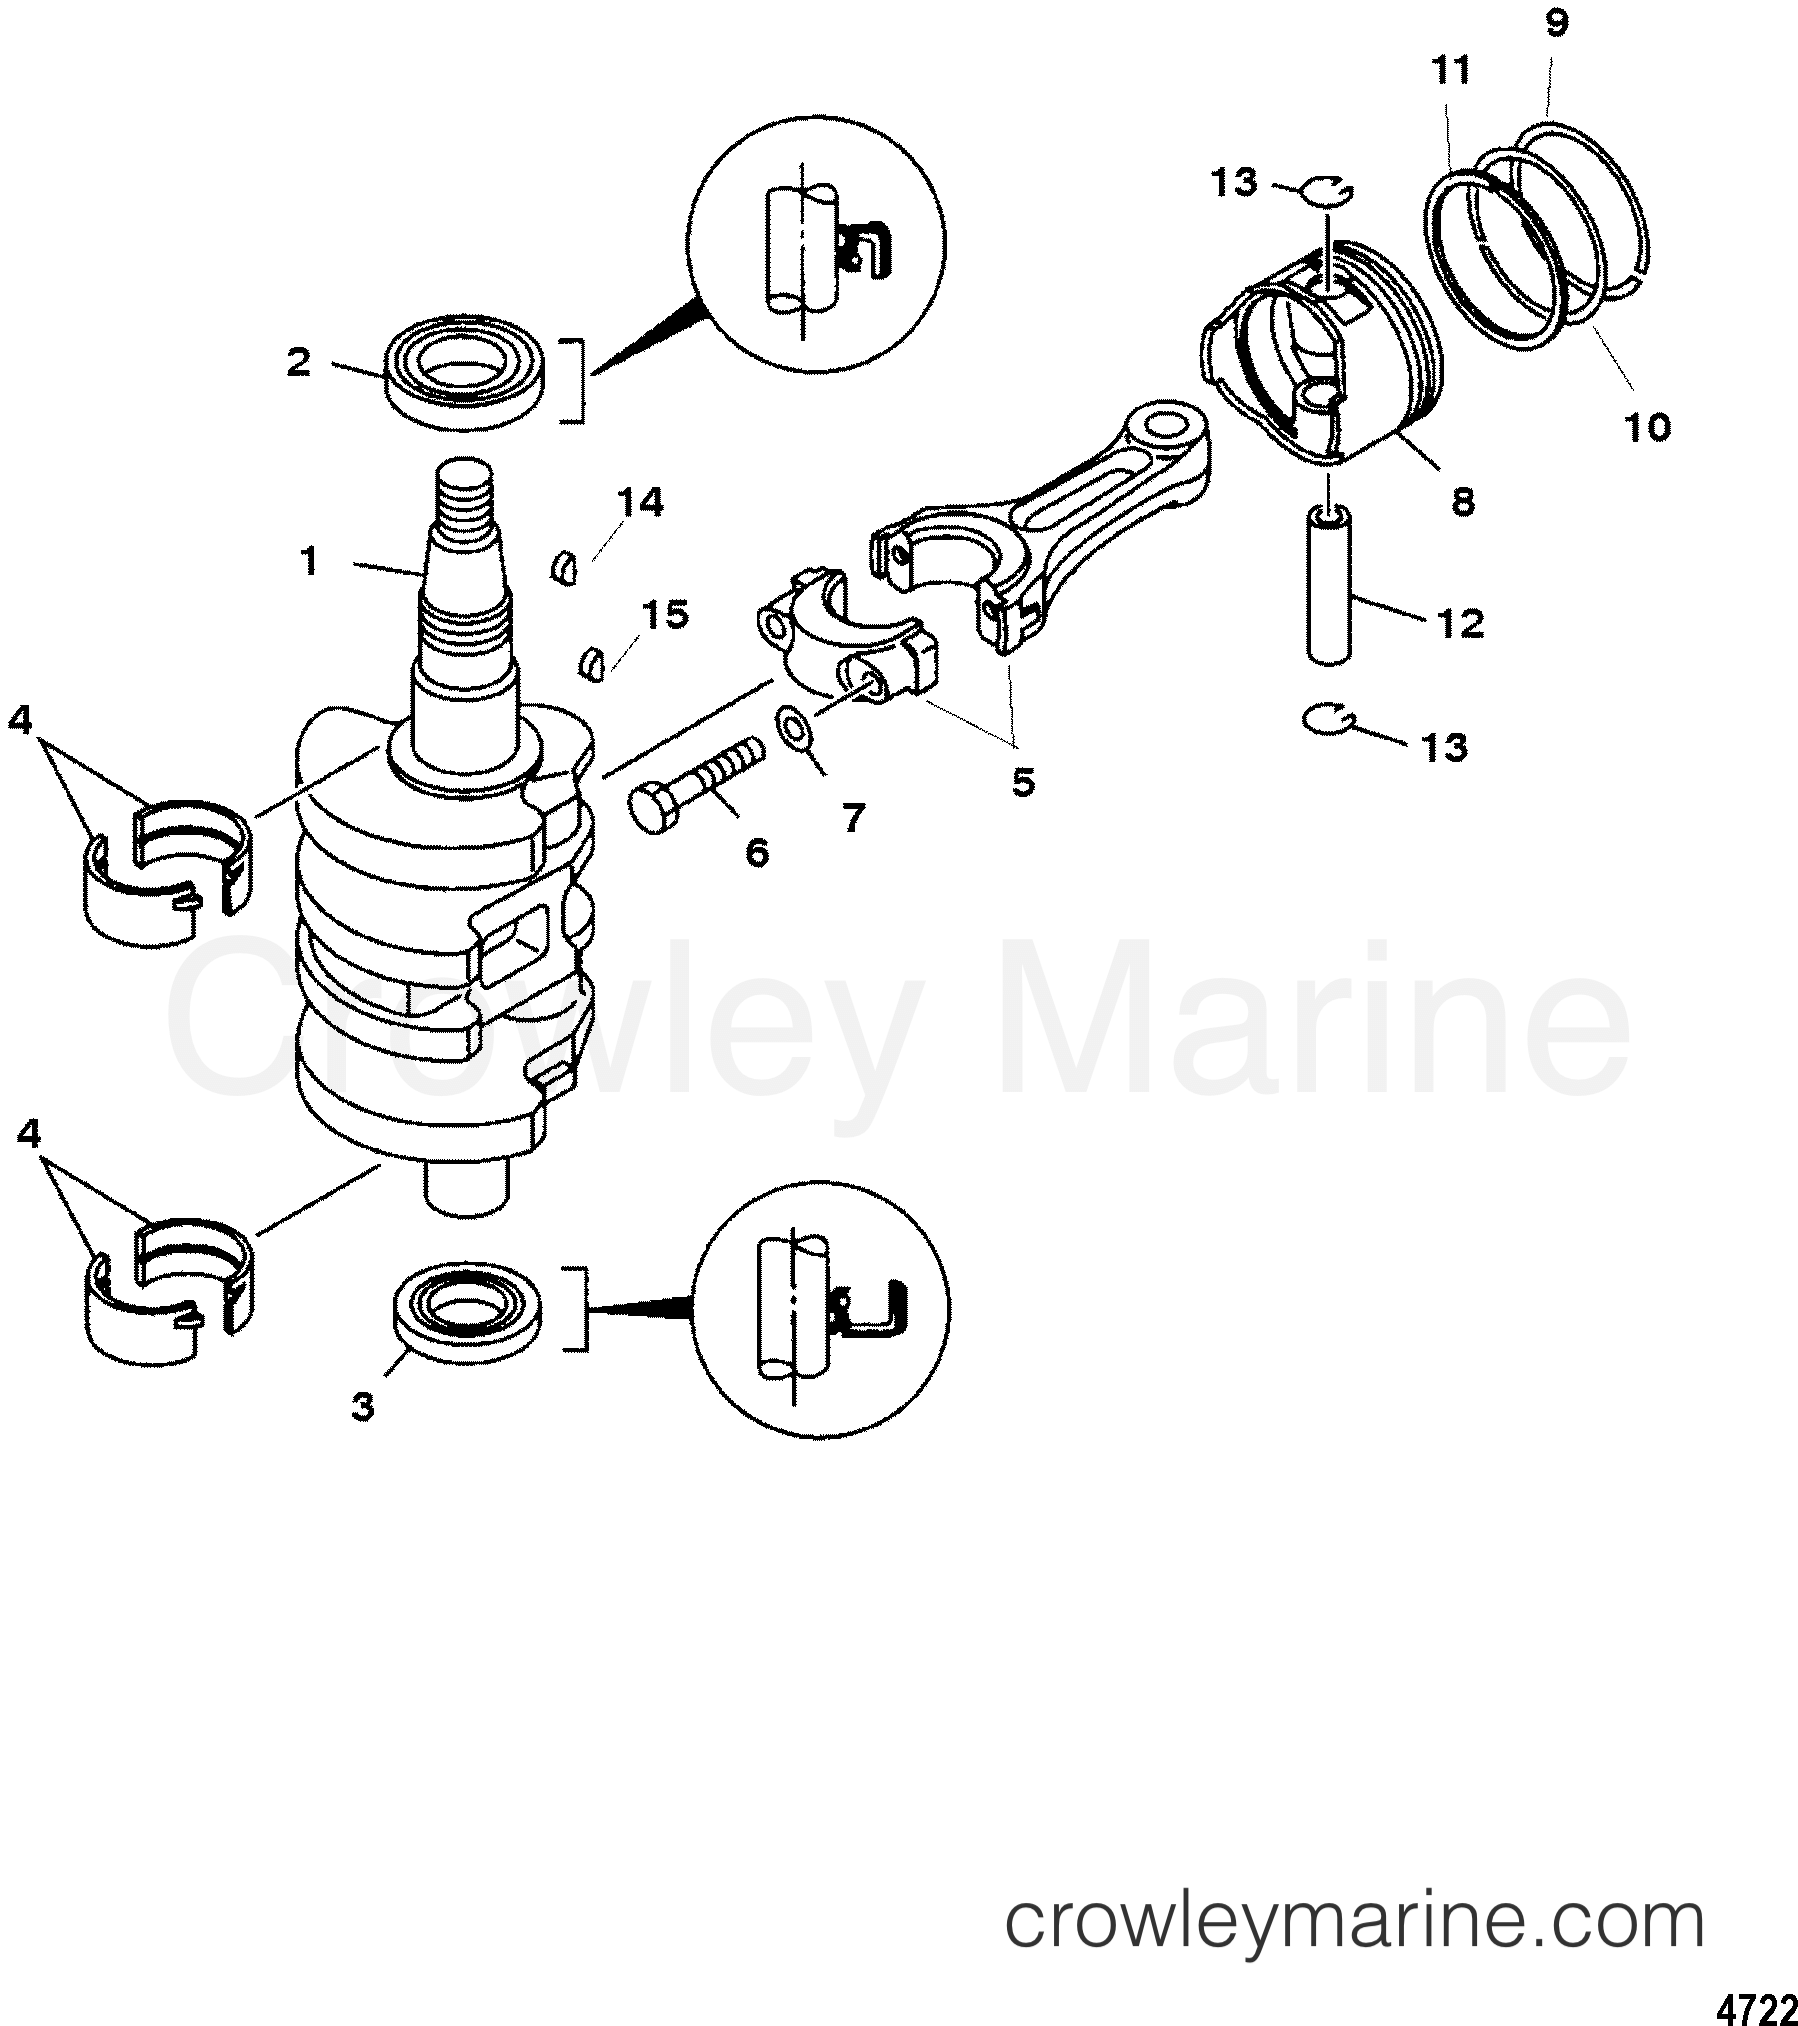 Crankshaft Pistons And Connecting Rods 1998 Mariner Outboard 15 Engine Diagram Schedule E 4 7f15302gd